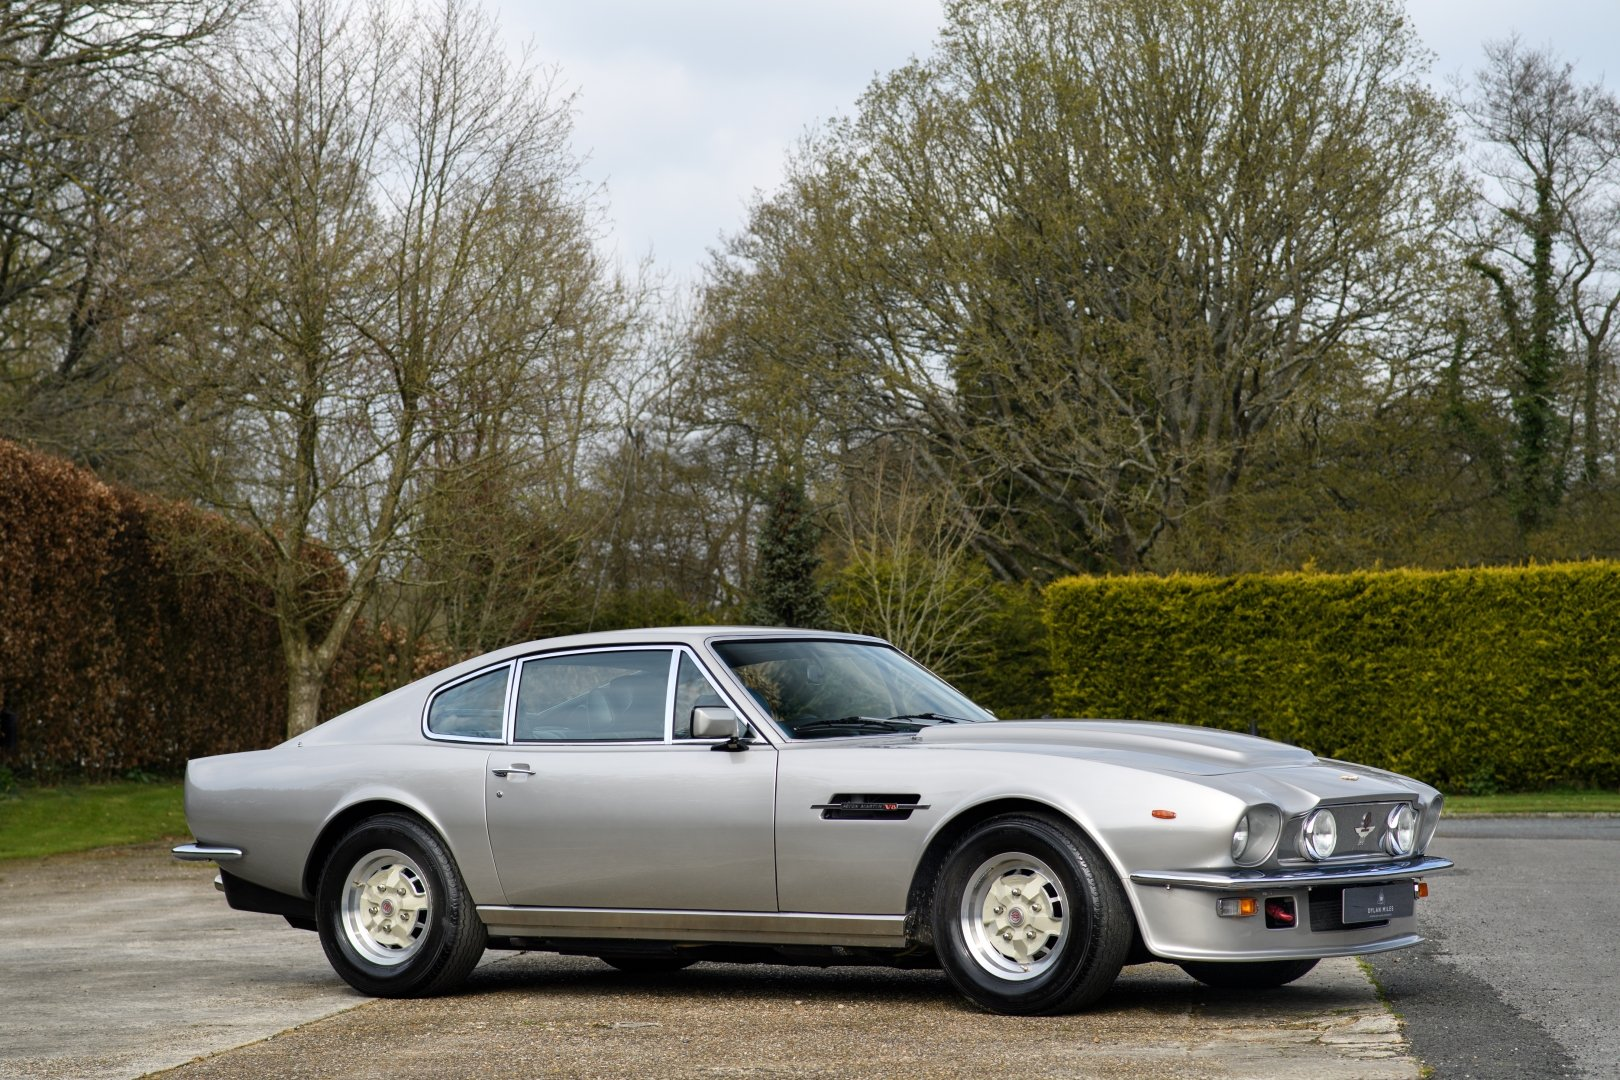 1978 Aston Martin V8 Vantage - Factory Works Demonstrator For Sale (picture 1 of 6)